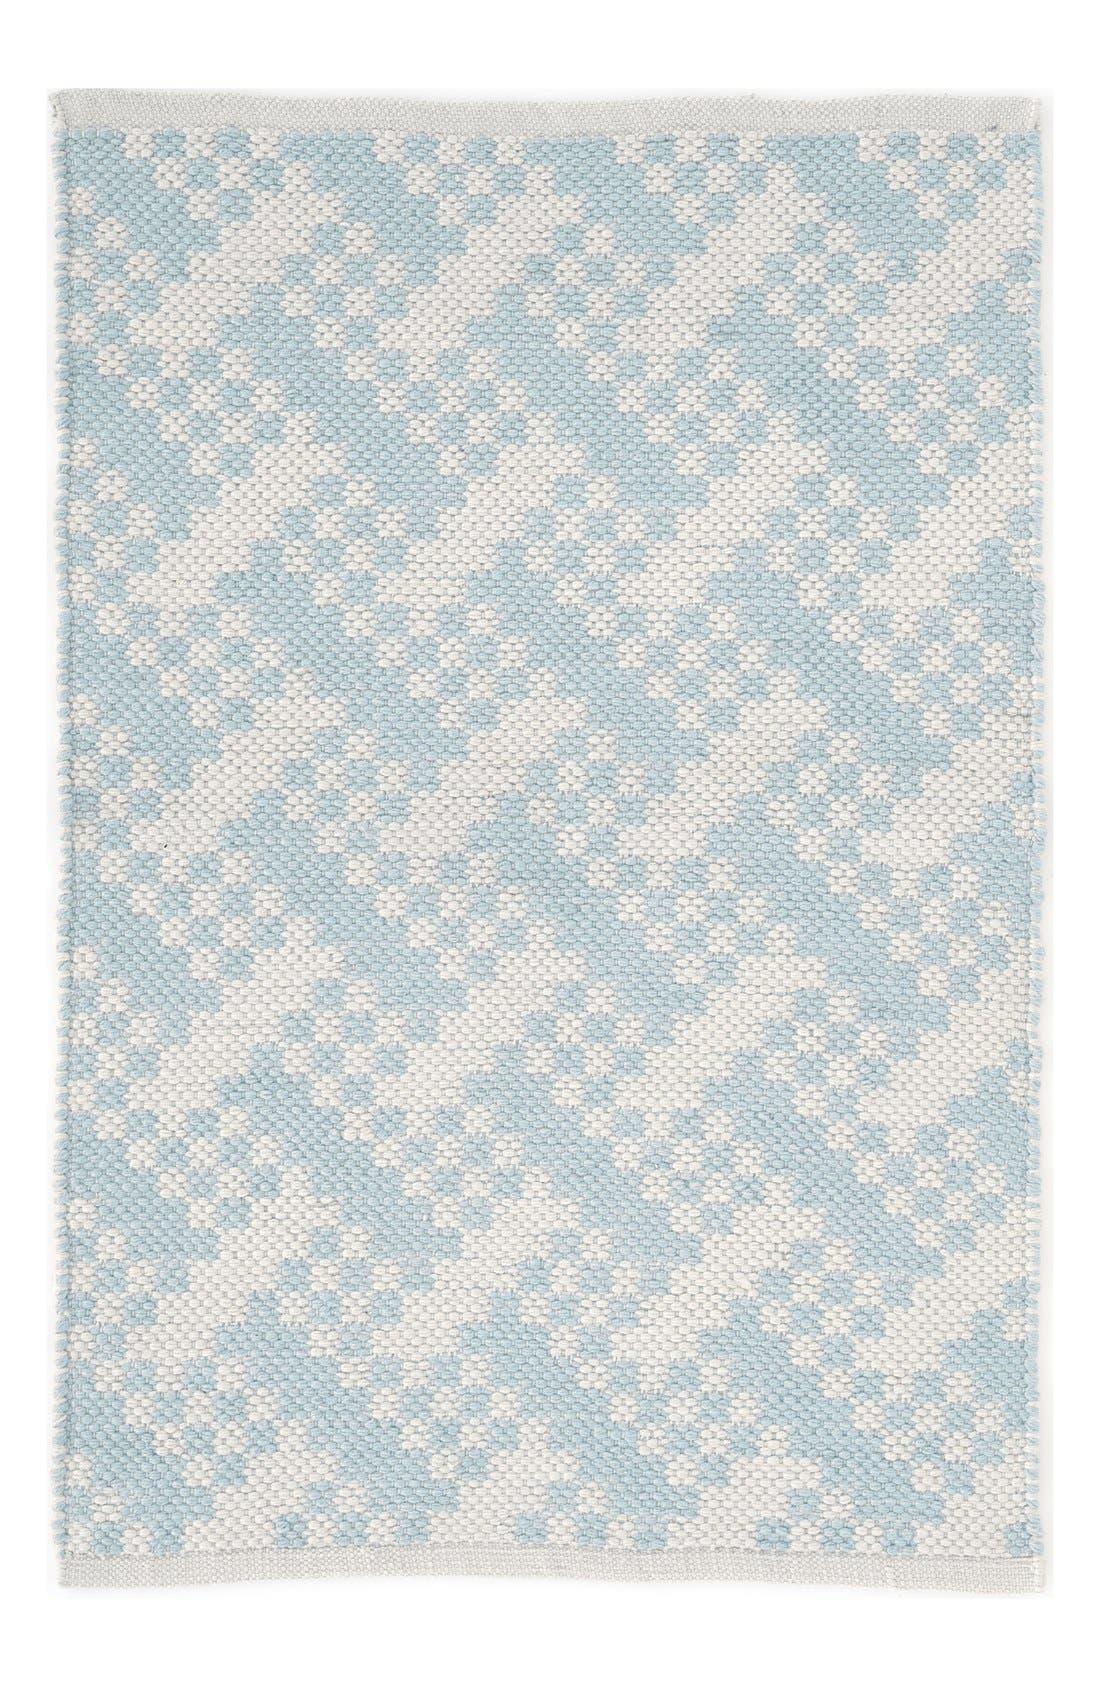 'Hudson' Indoor/Outdoor Rug,                             Main thumbnail 2, color,